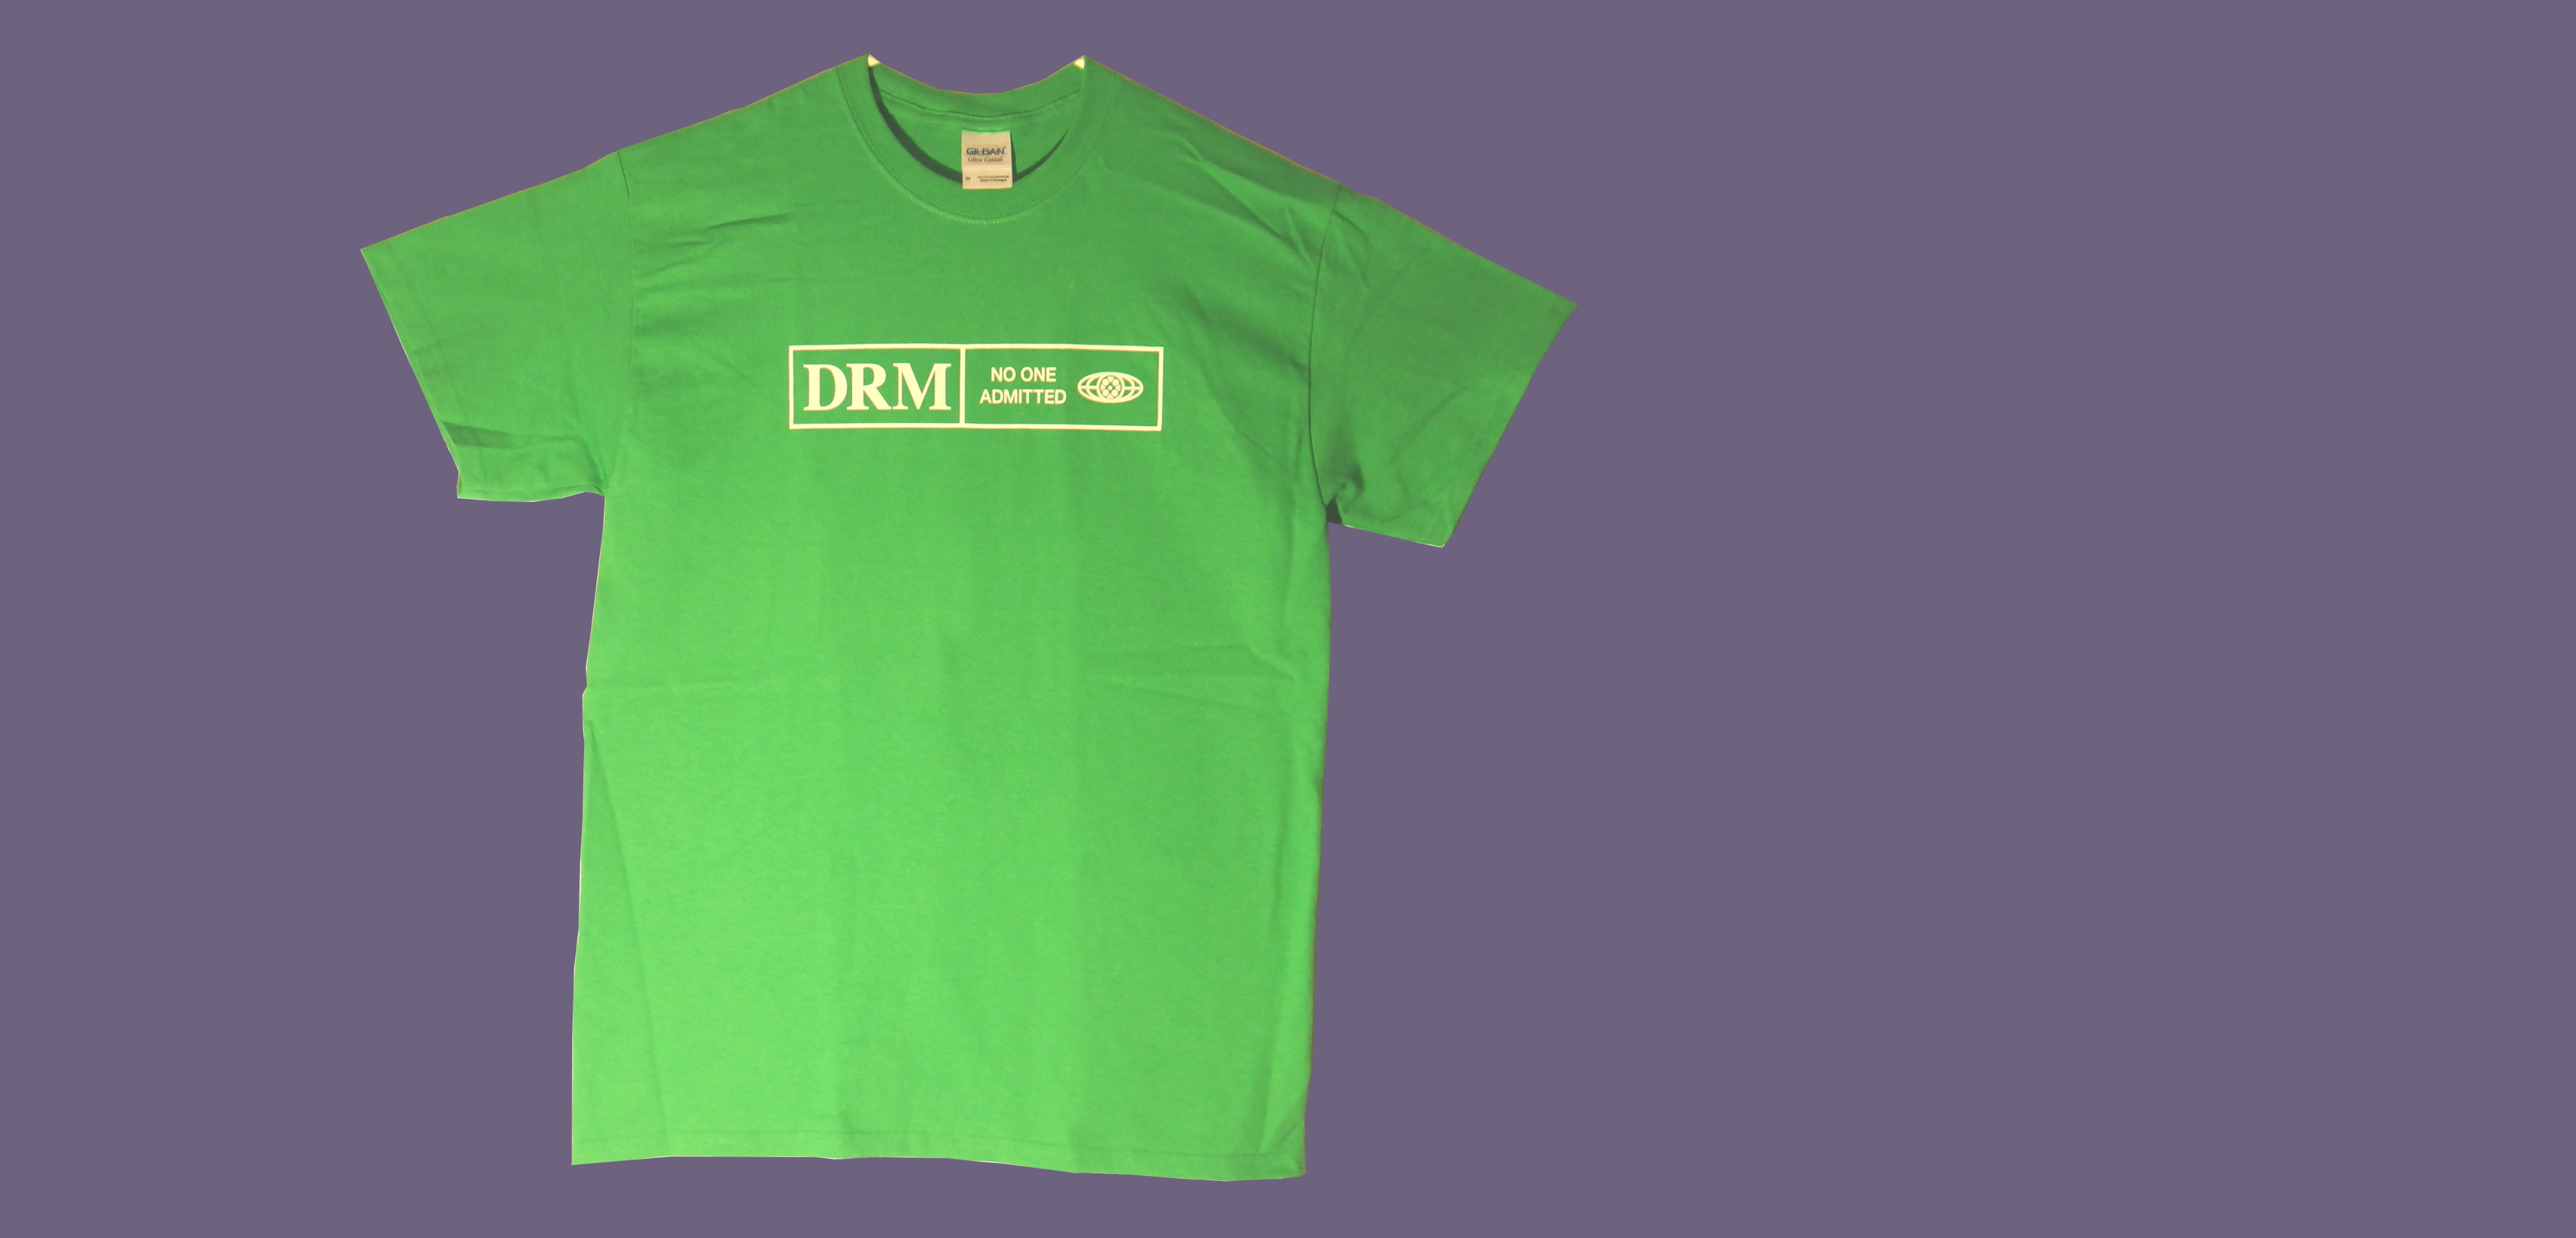 Get the t-shirt! | Defective by Design